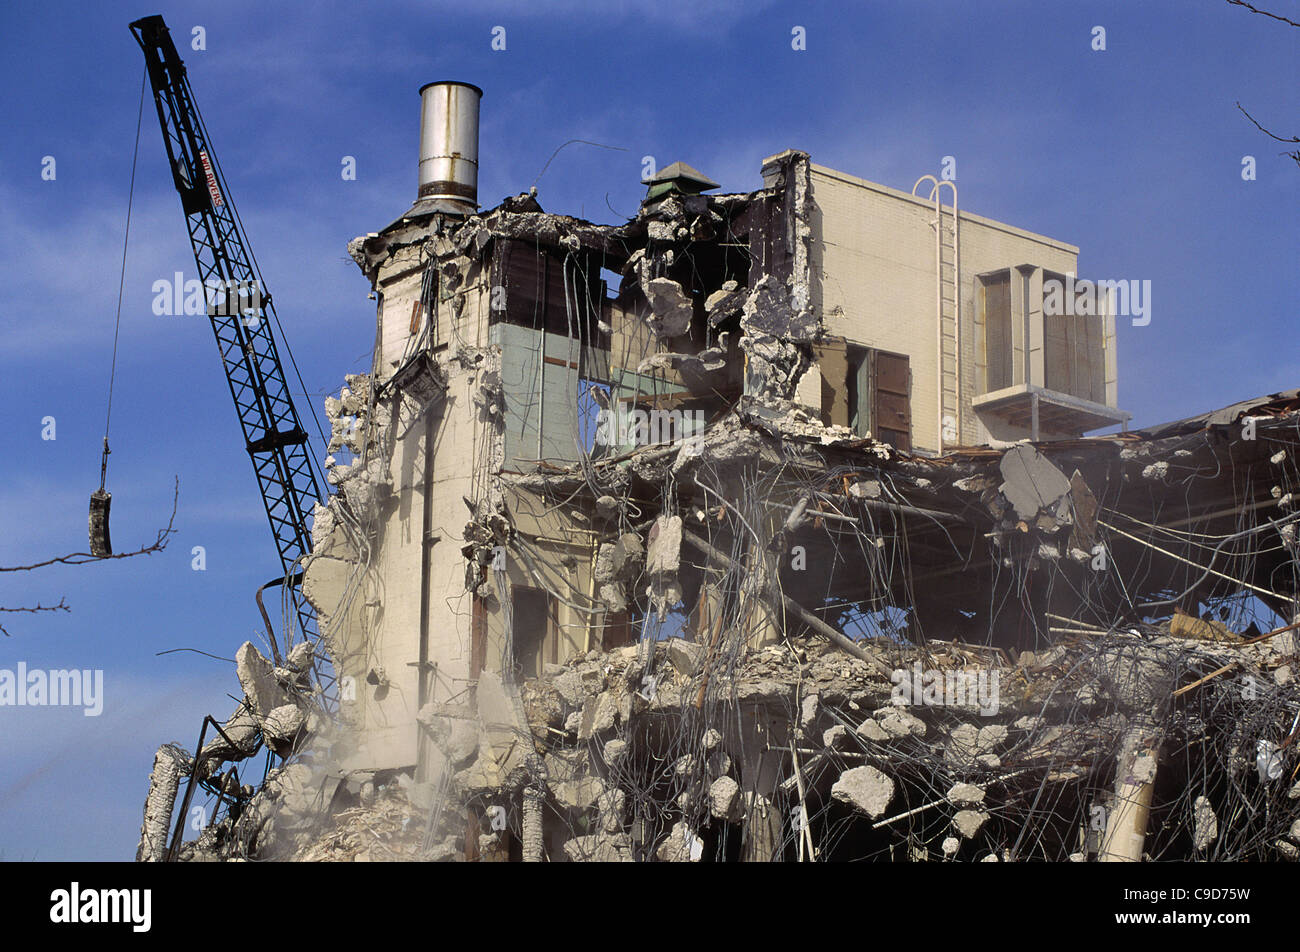 Wrecking ball and a demolished building - Stock Image